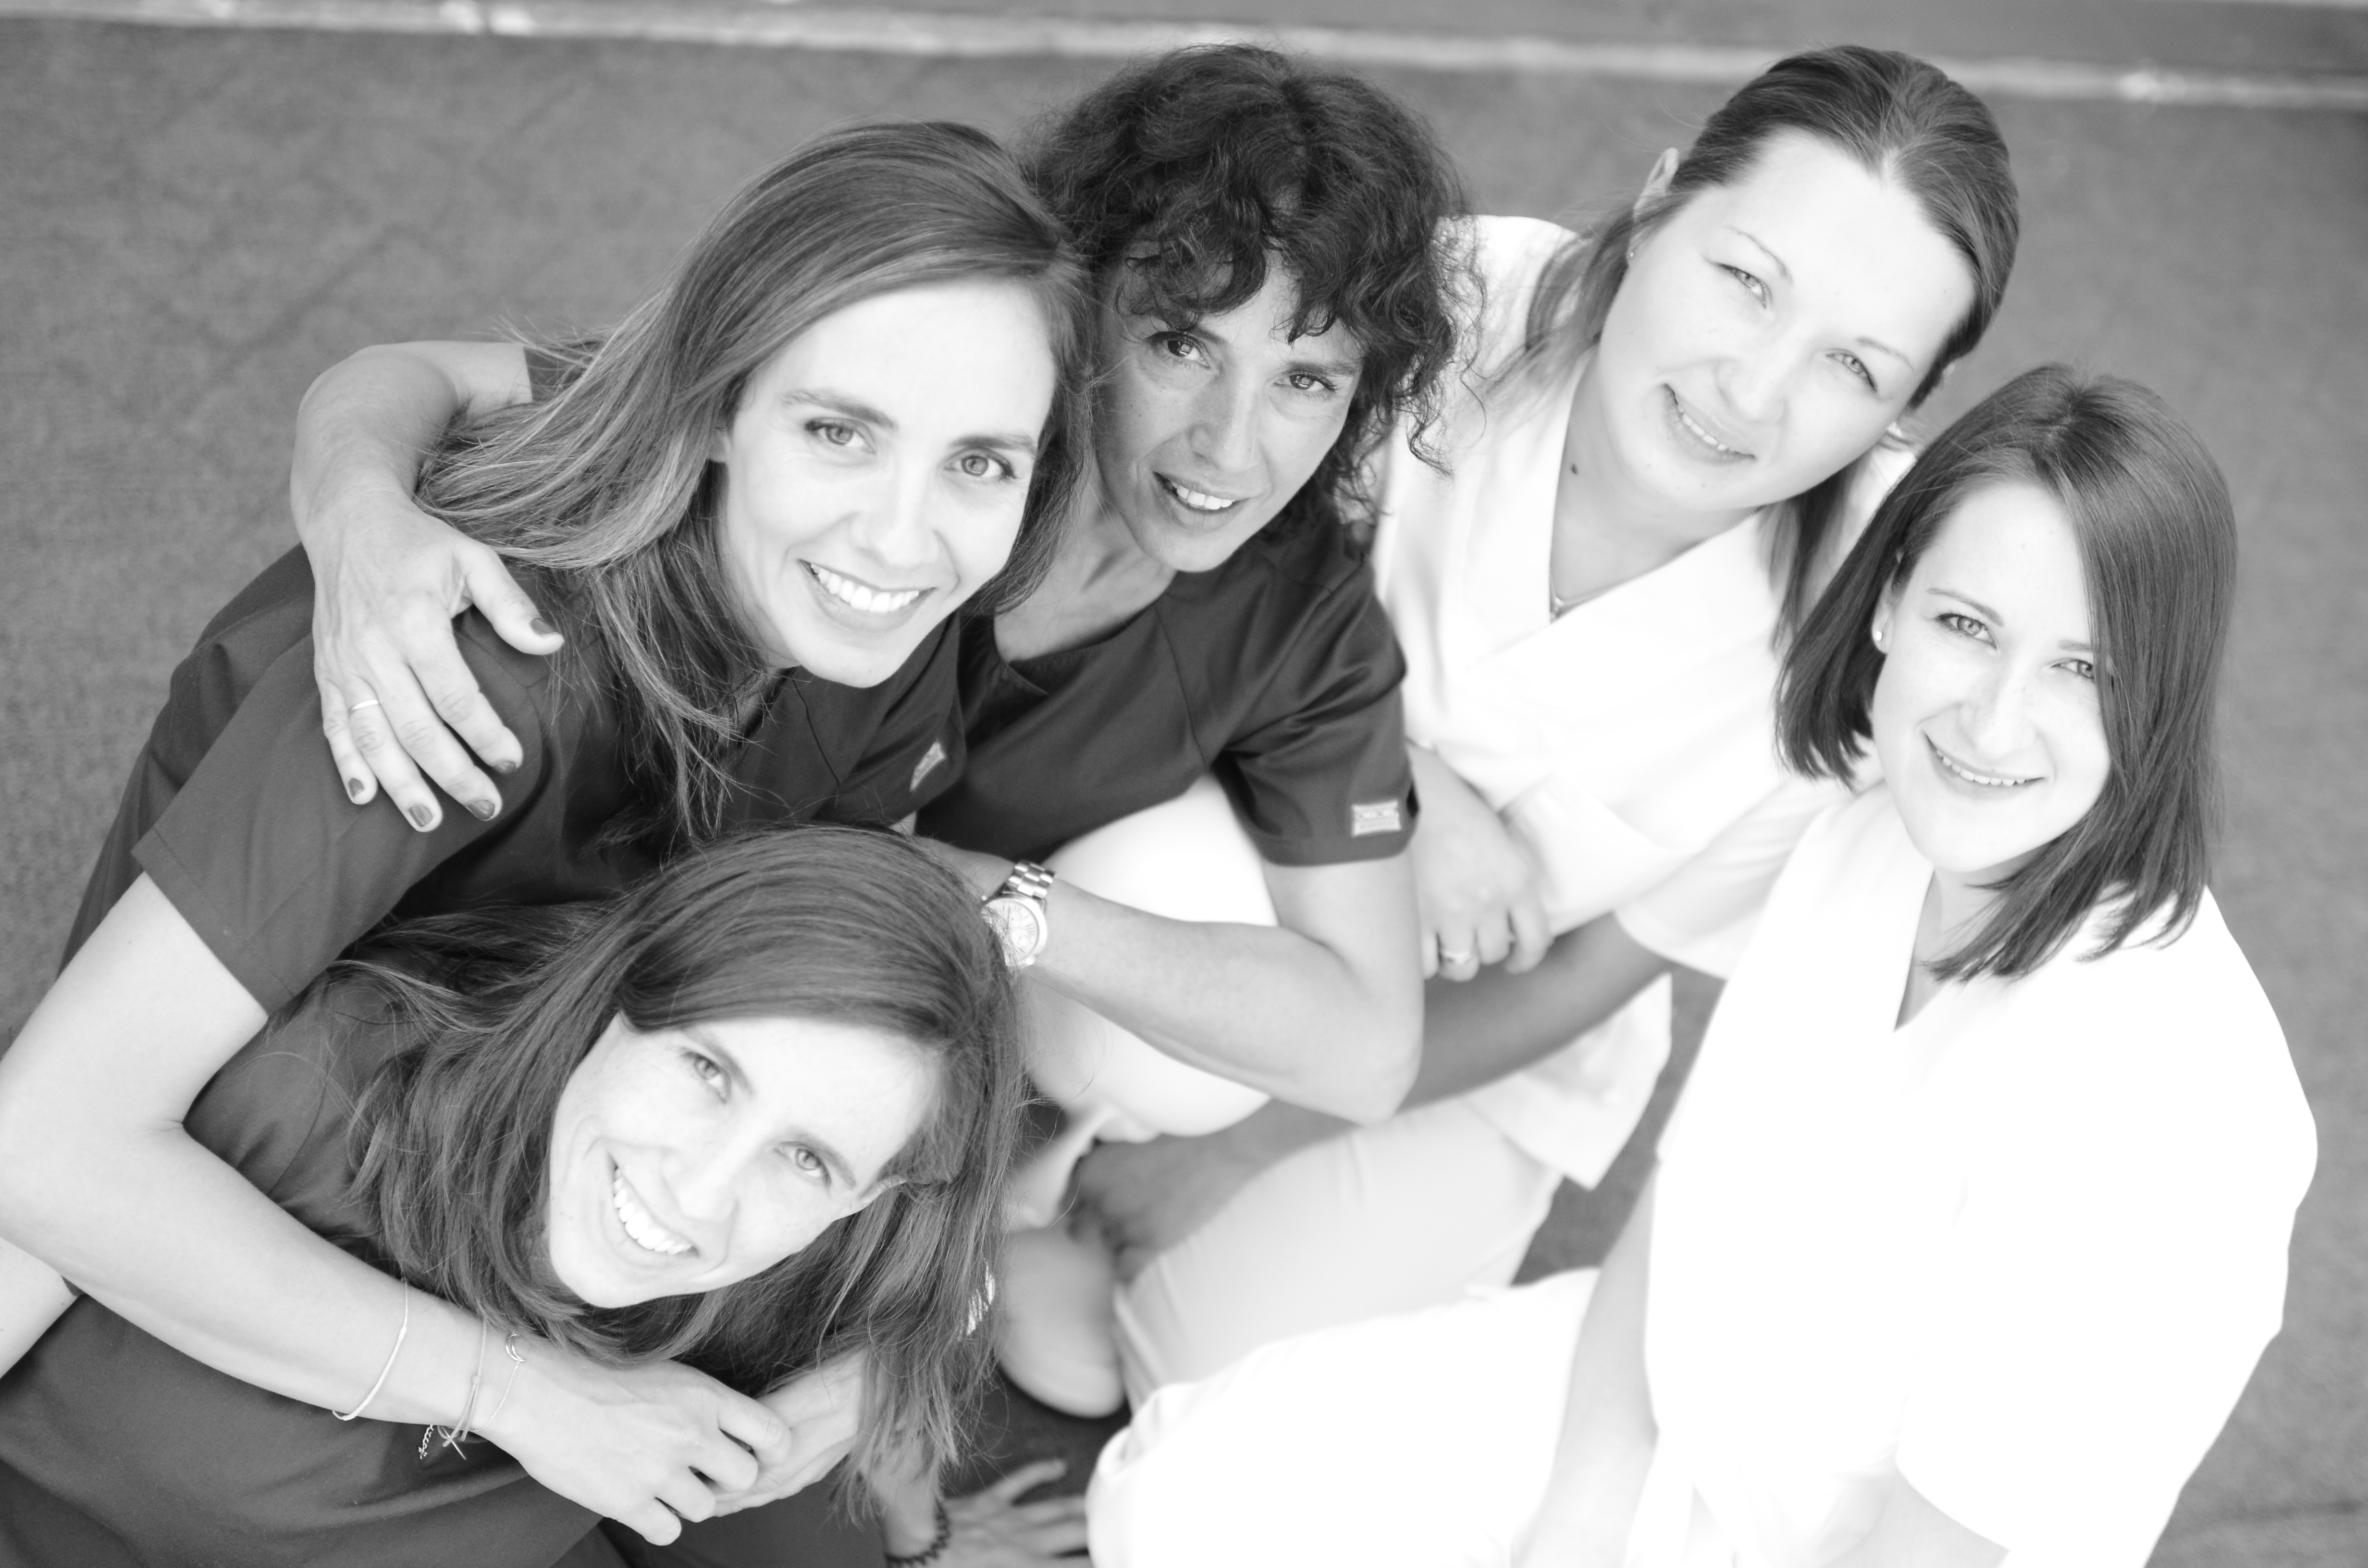 Equipo clinica dental Qboca